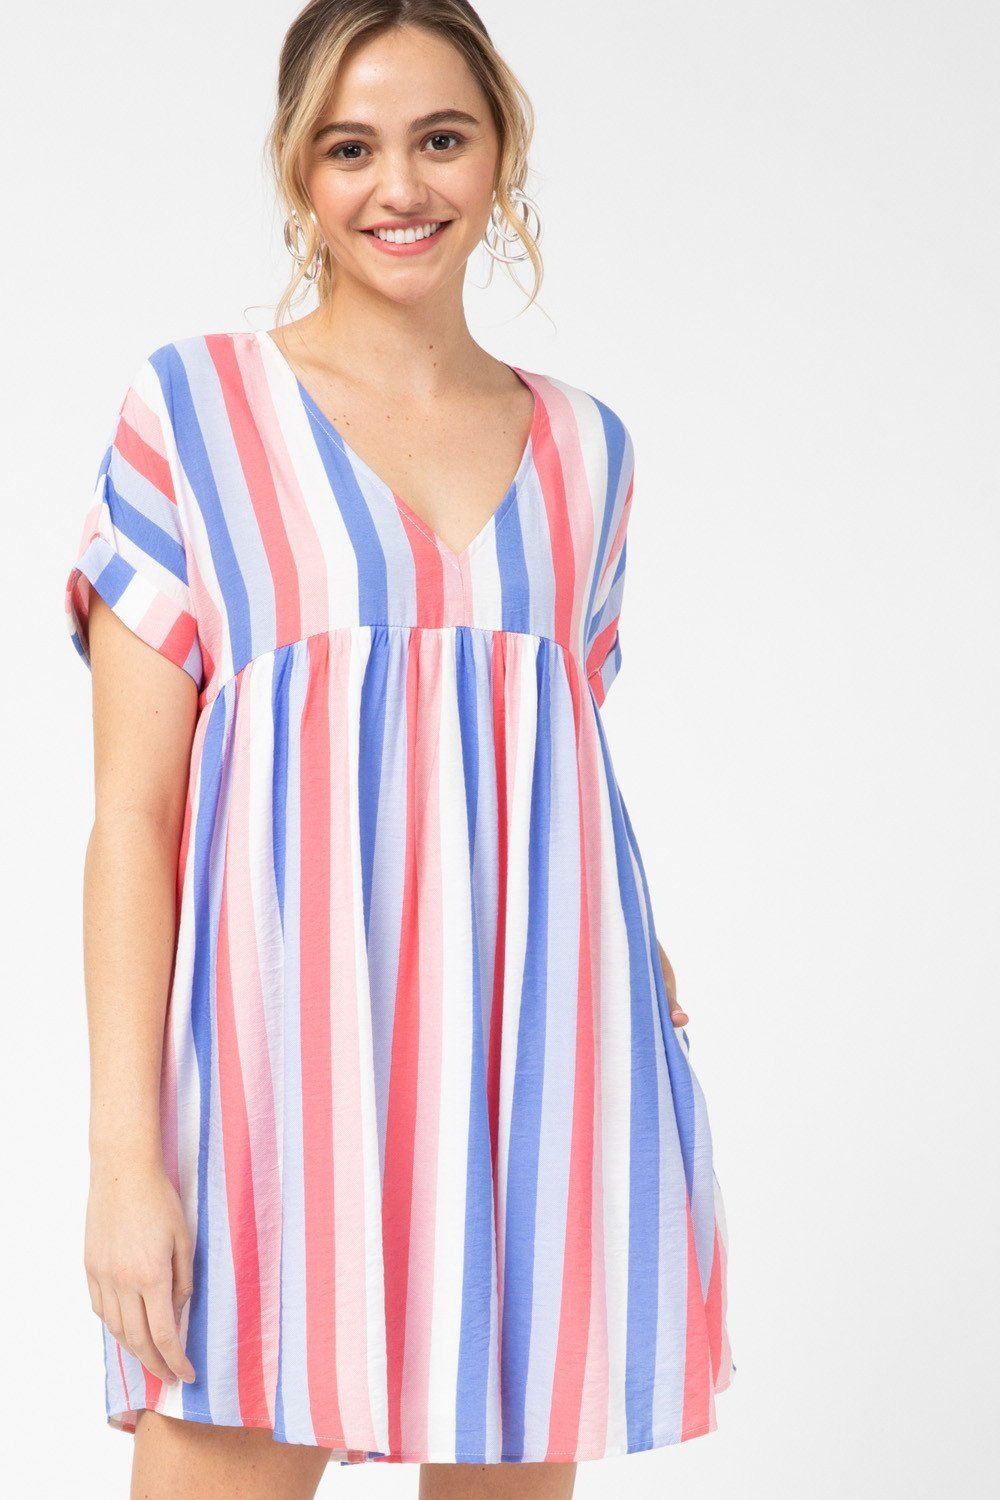 Crazy About You Coral Striped Dress - Caroline Hill